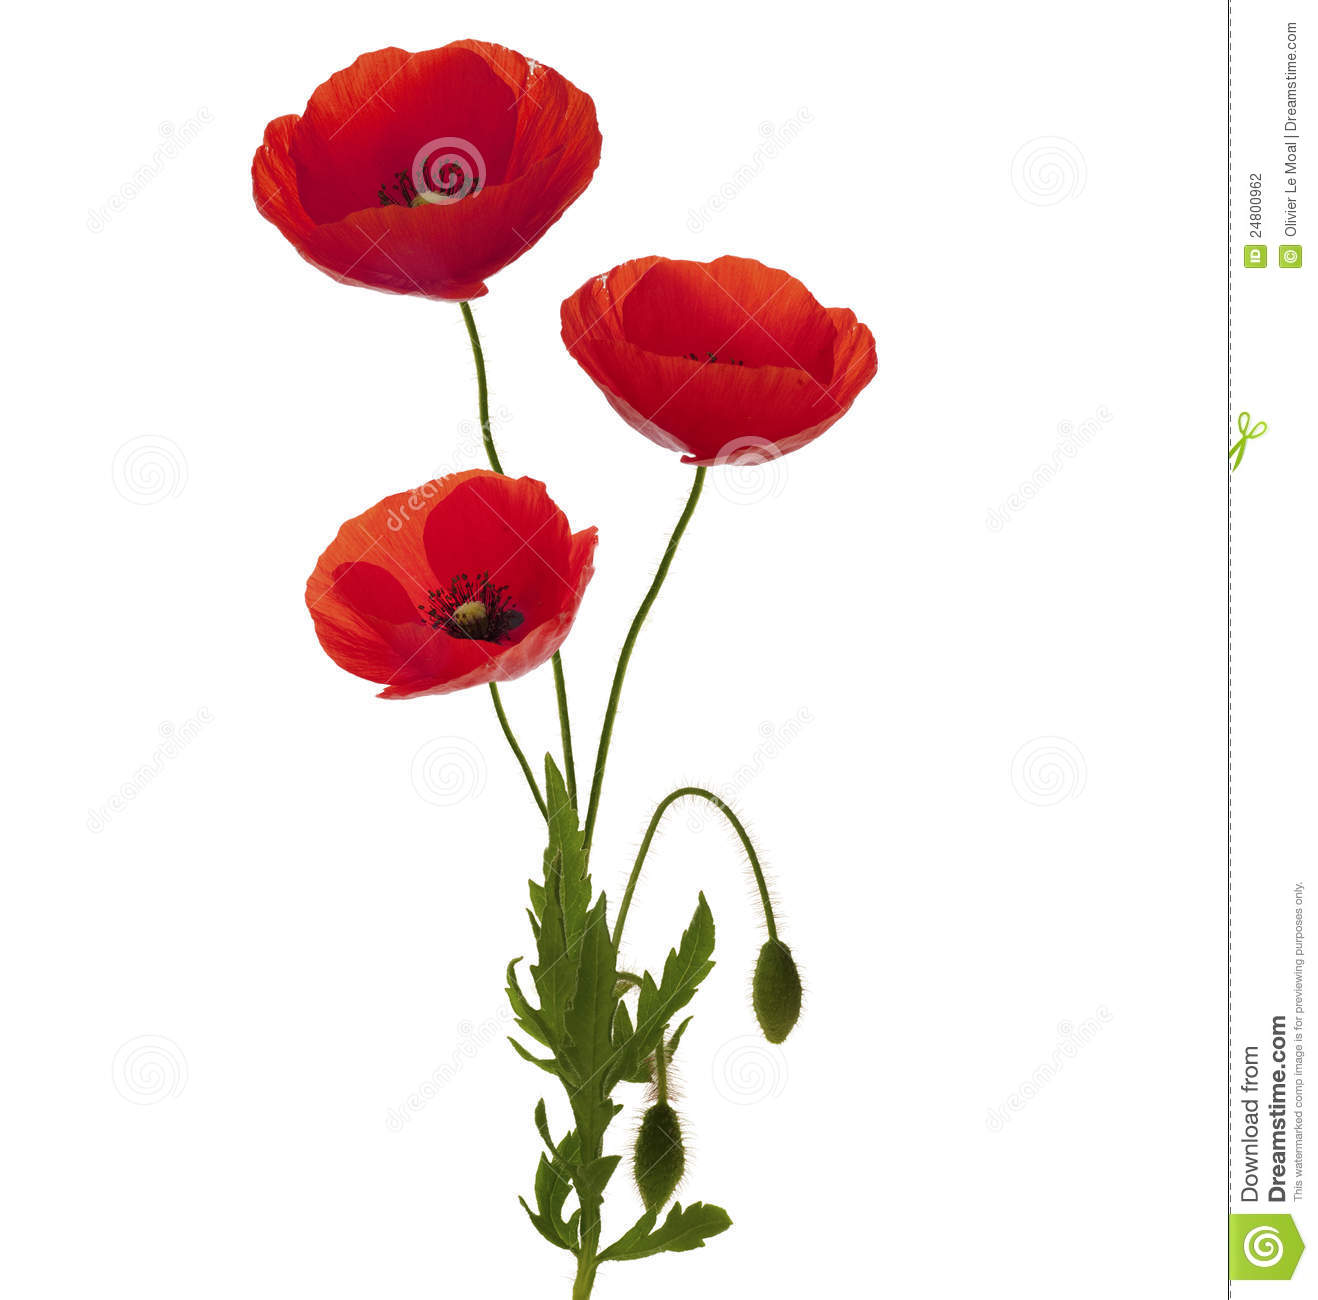 flower vase drawing designs with Fotografia Stock Un Mazzo Dei Tre Papaveri Image24800962 on 3d Flower Drawing 3d Flower Pencil Drawing Drawing Of Sketch as well Watch likewise Flower Pot Ideas Drawing Vase With Flowers Drawings For Kids in addition 375d219ce3 likewise Watch.